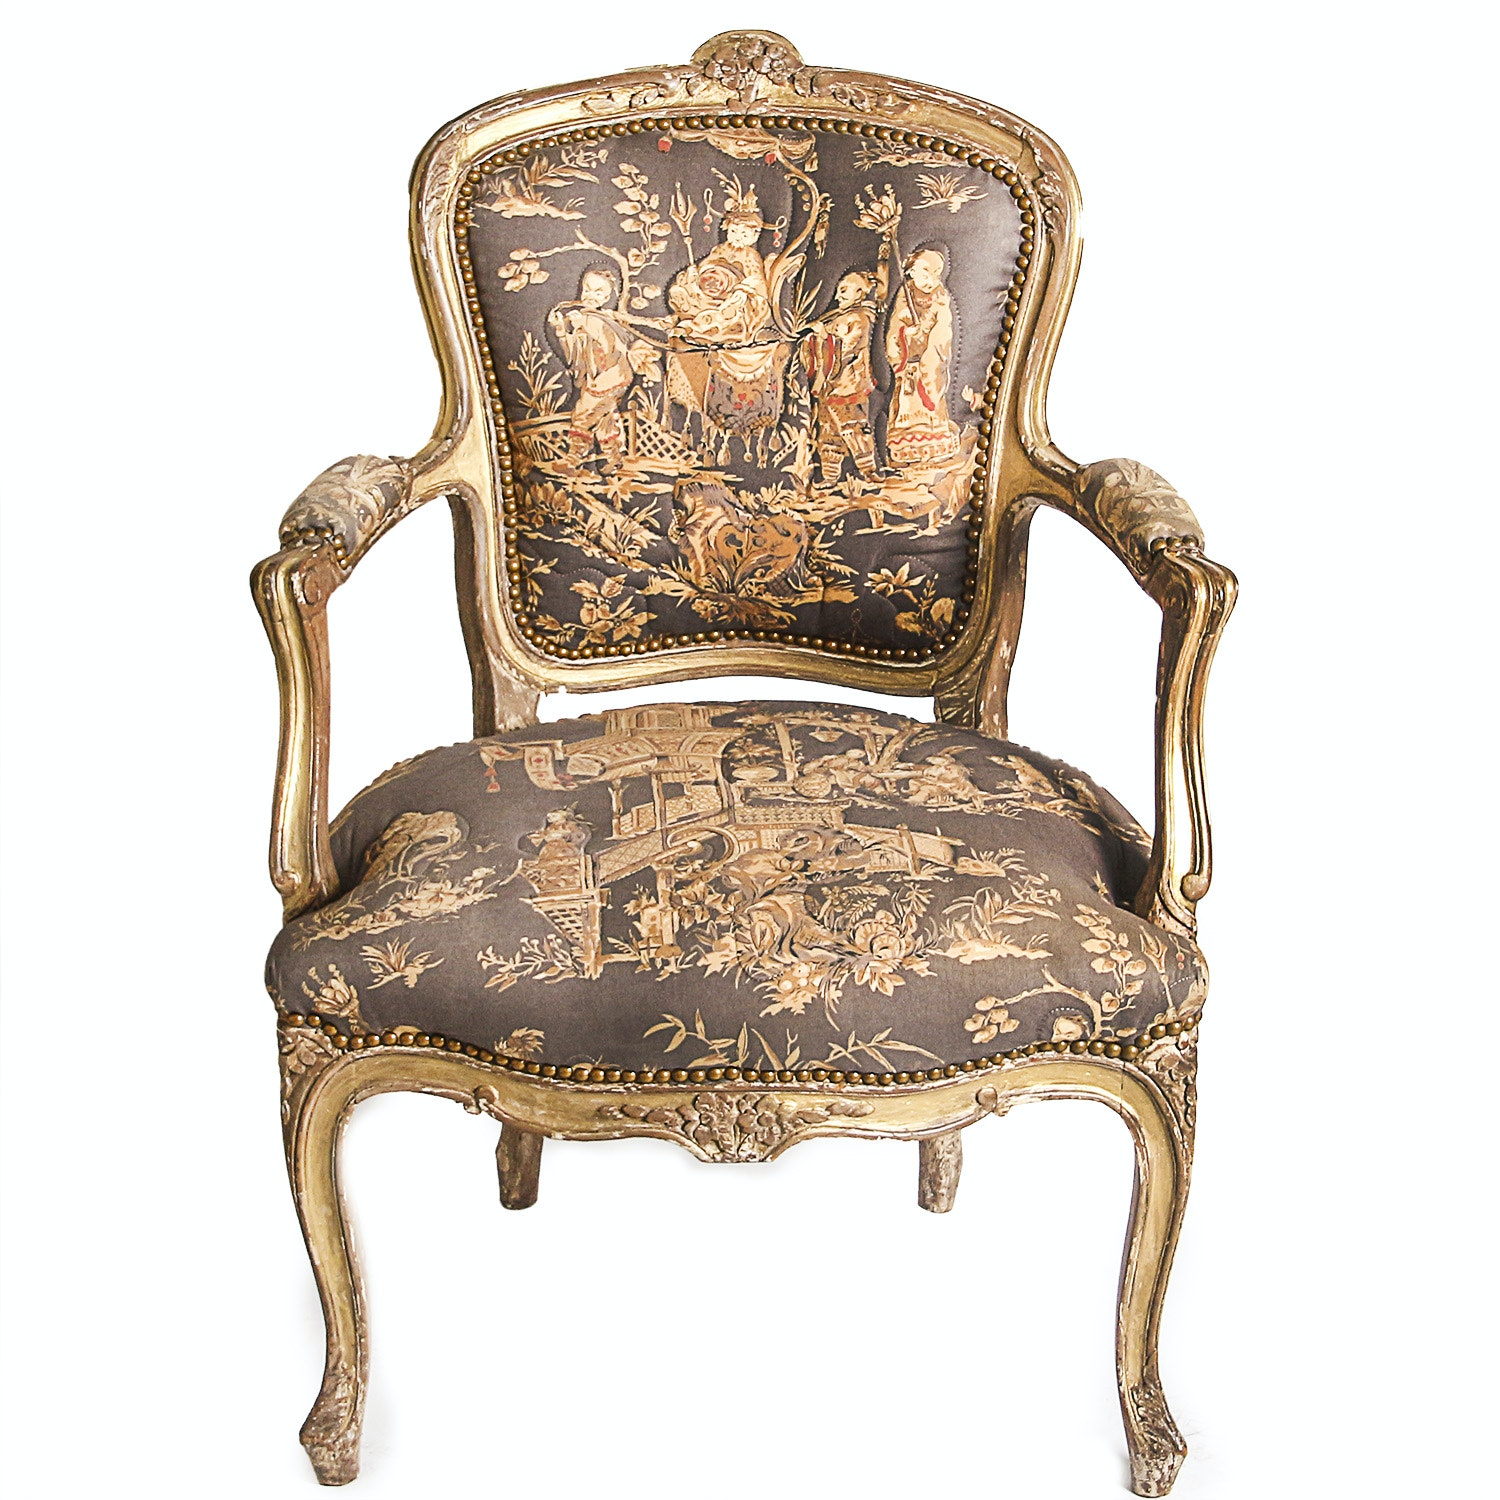 Louis XV Style Giltwood Fauteuil with Chinoiserie Fabric